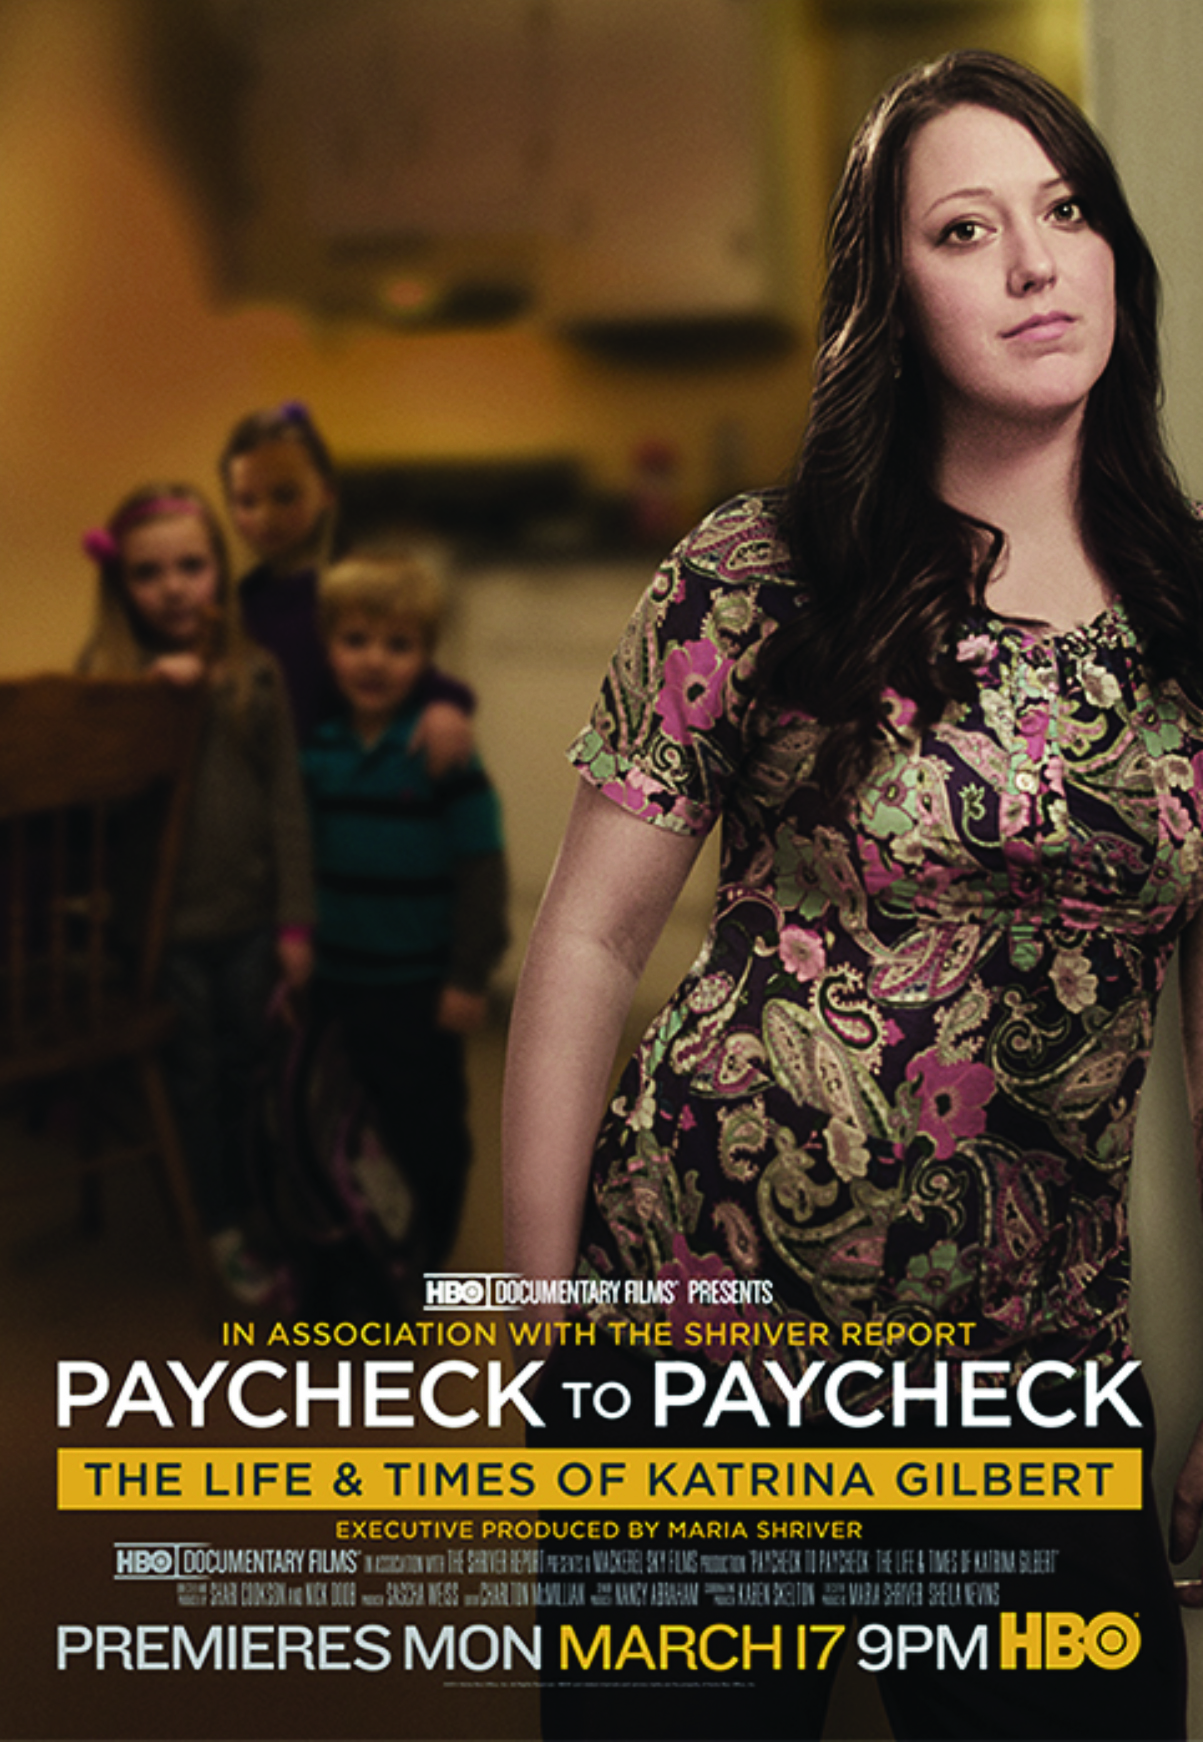 Paycheck to Paycheck: The Life & Times of Katrina Gilbert - This Emmy-winning HBO Documentary Film featuring local woman and Chambliss Center for Children parent Katrina Gilbert was released in March 2014. The film was produced in association with The Shriver Report: A Woman's Nation Pushes Back From the Brink and executive produced by Maria Shriver. Click HERE to see a short video about the documentary, or visit HBO.com to view the film in its entirety.